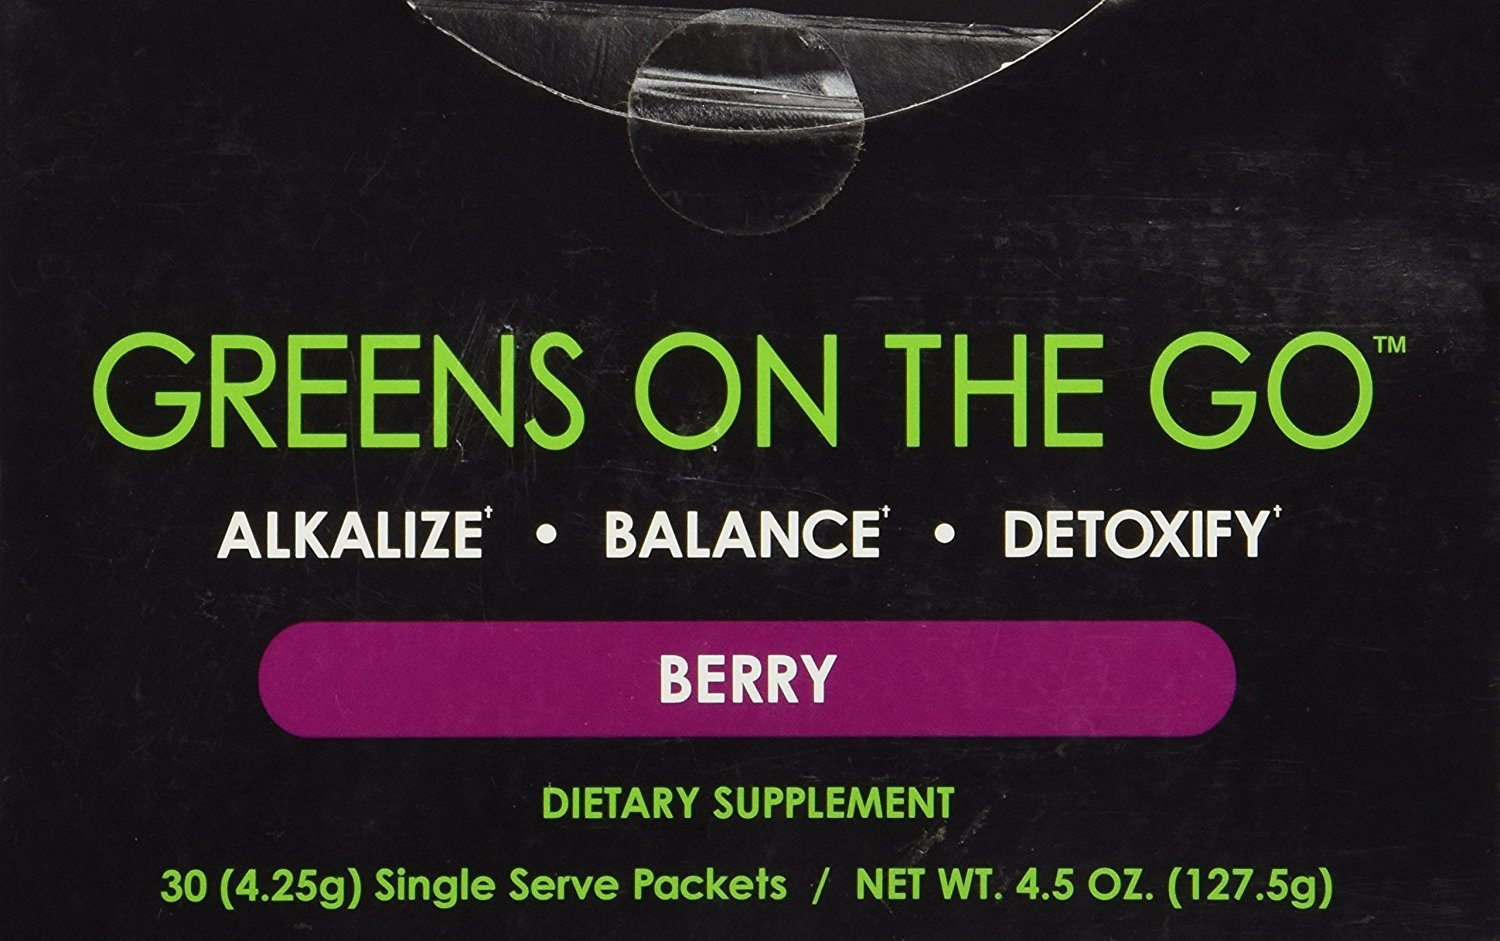 IT WORKS GREENS ON THE GO  30 PACKETS - 1 MONTH SUPPLY - $45.00